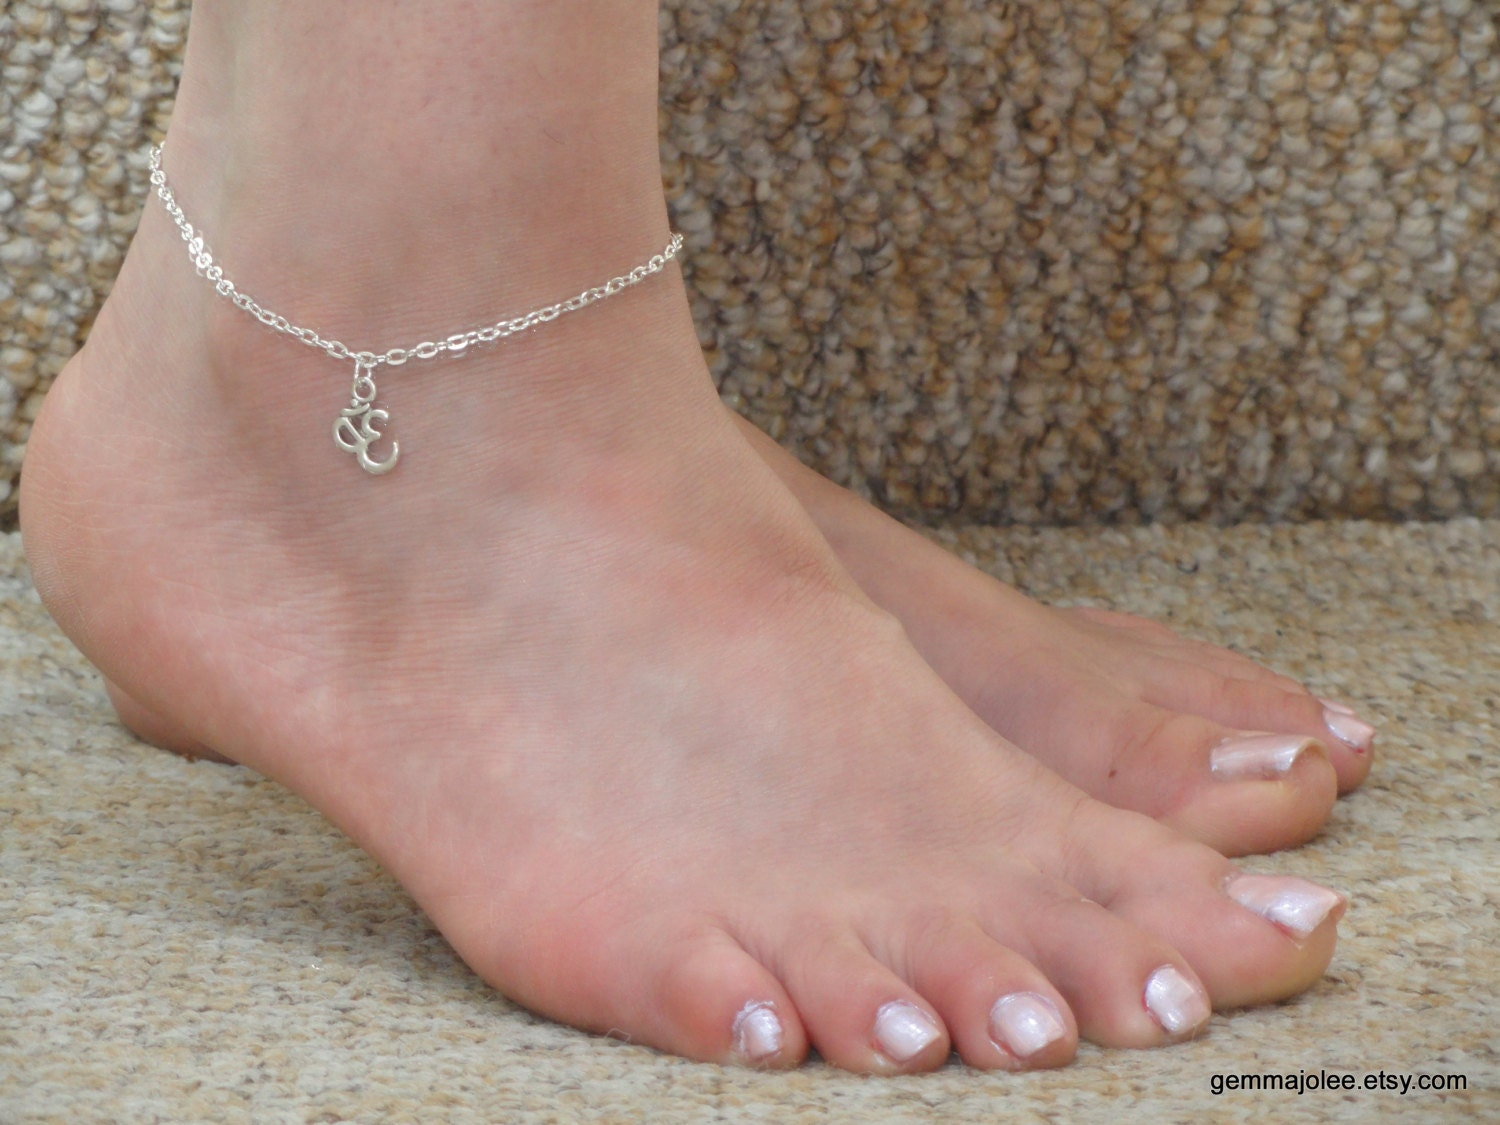 bracelet minimalist anklet ball on foot chain here great shop etsy filled leg silver s deal tommassinijewelry ankle dainty sterling a gold